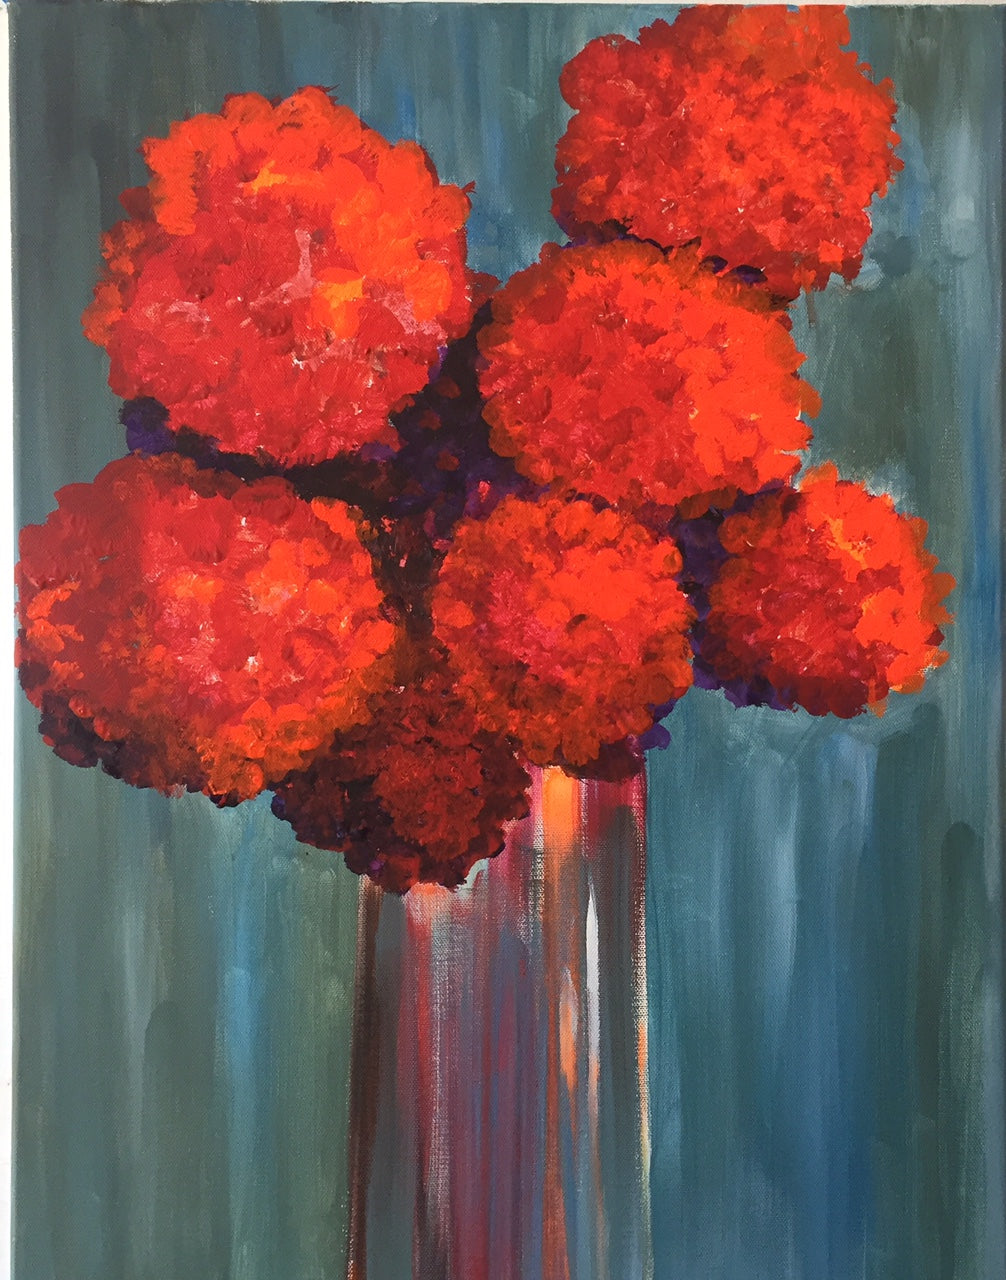 Canvas Red Flower Painting Still Life Wall Decor Floral Accents Kitchen Room